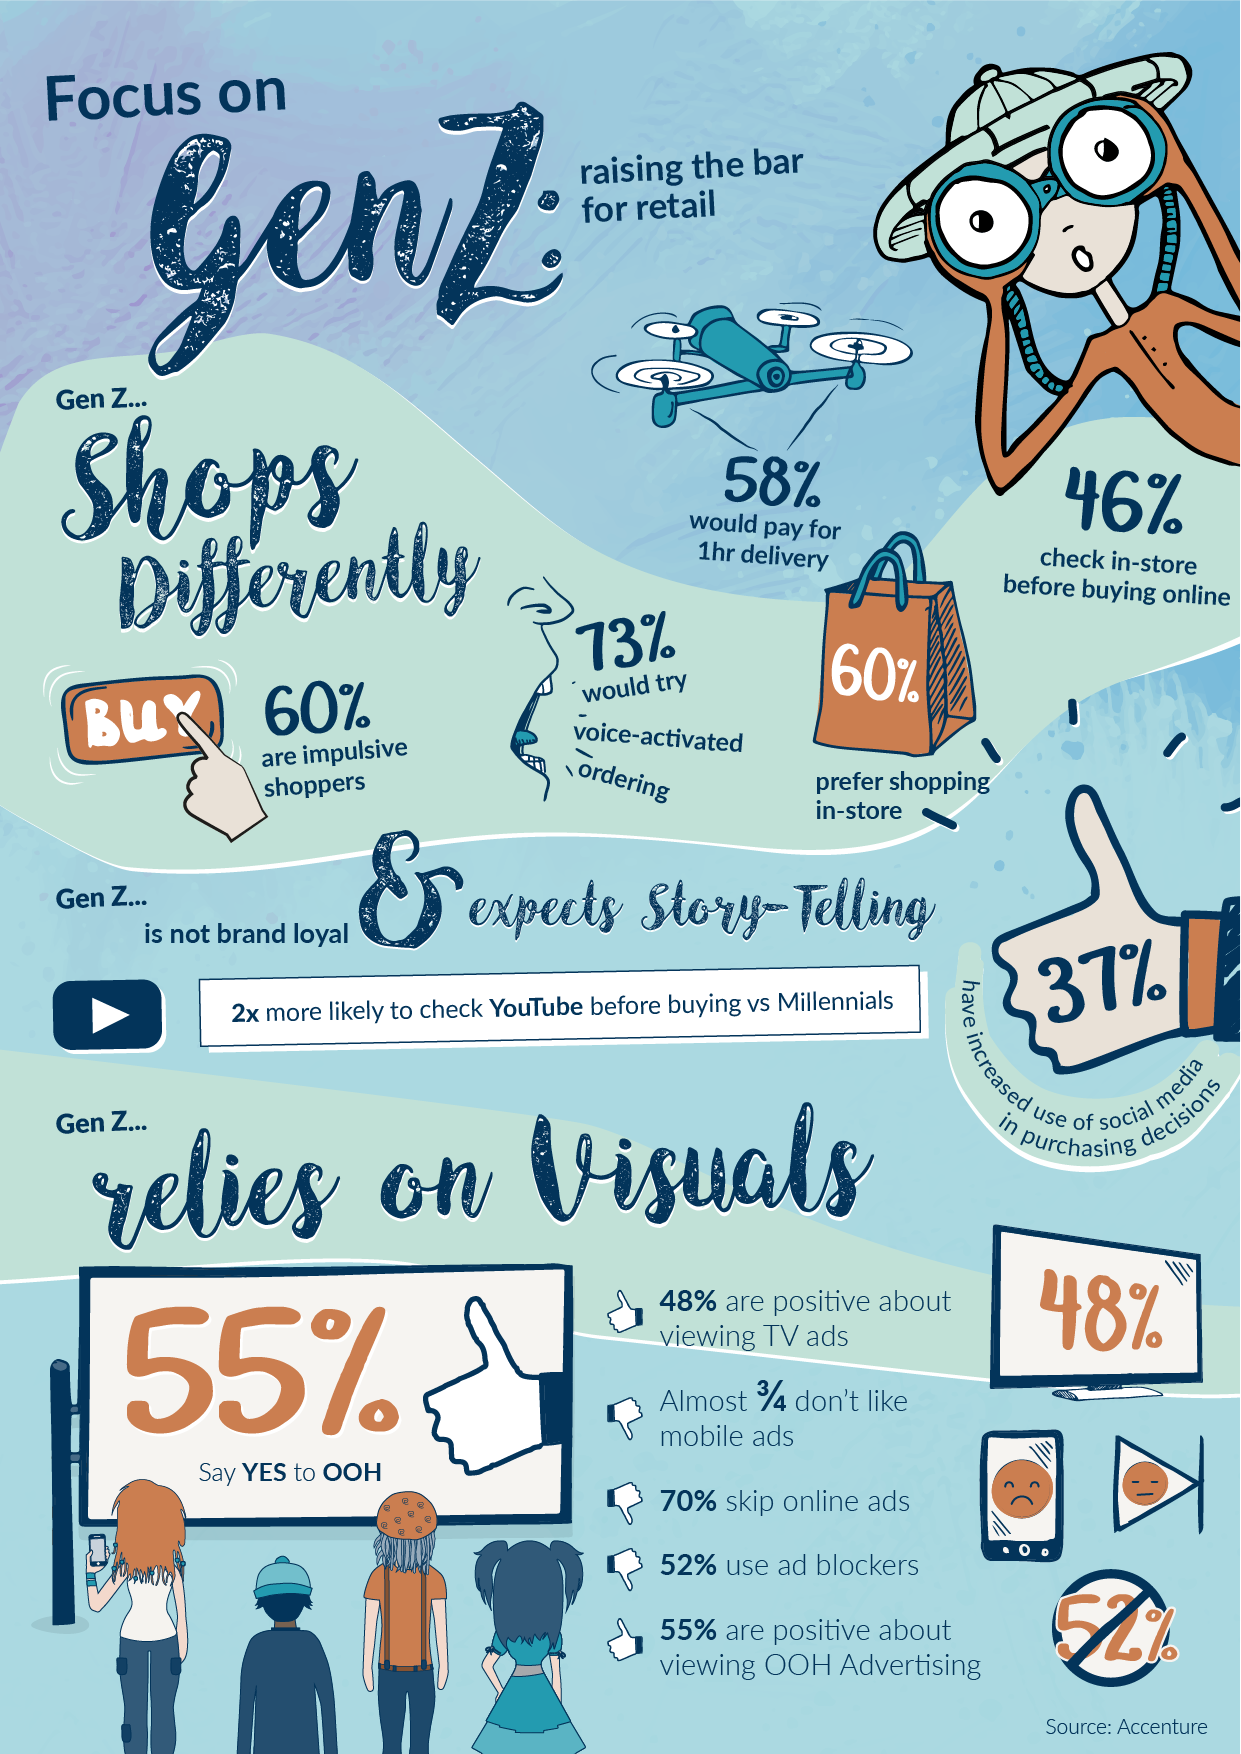 Focus On Gen Z Raising The Bar For Retail Infographic Infographic Marketing Business Inspiration Quotes Generational Differences